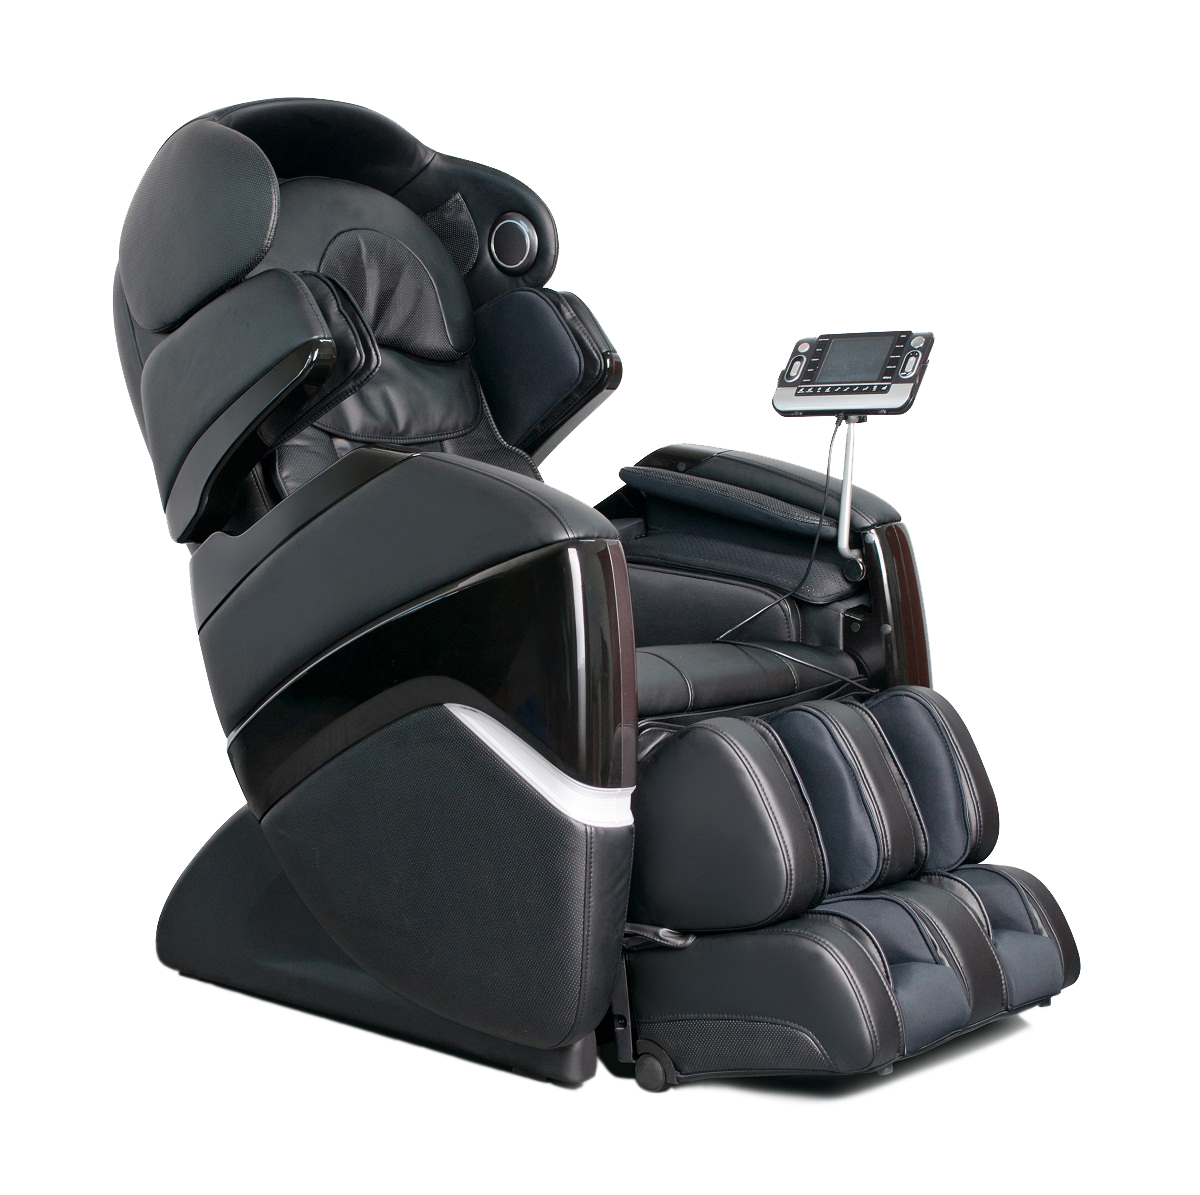 Osaki os 3d pro cyber zero gravity massage chair recliner for Chair recliner